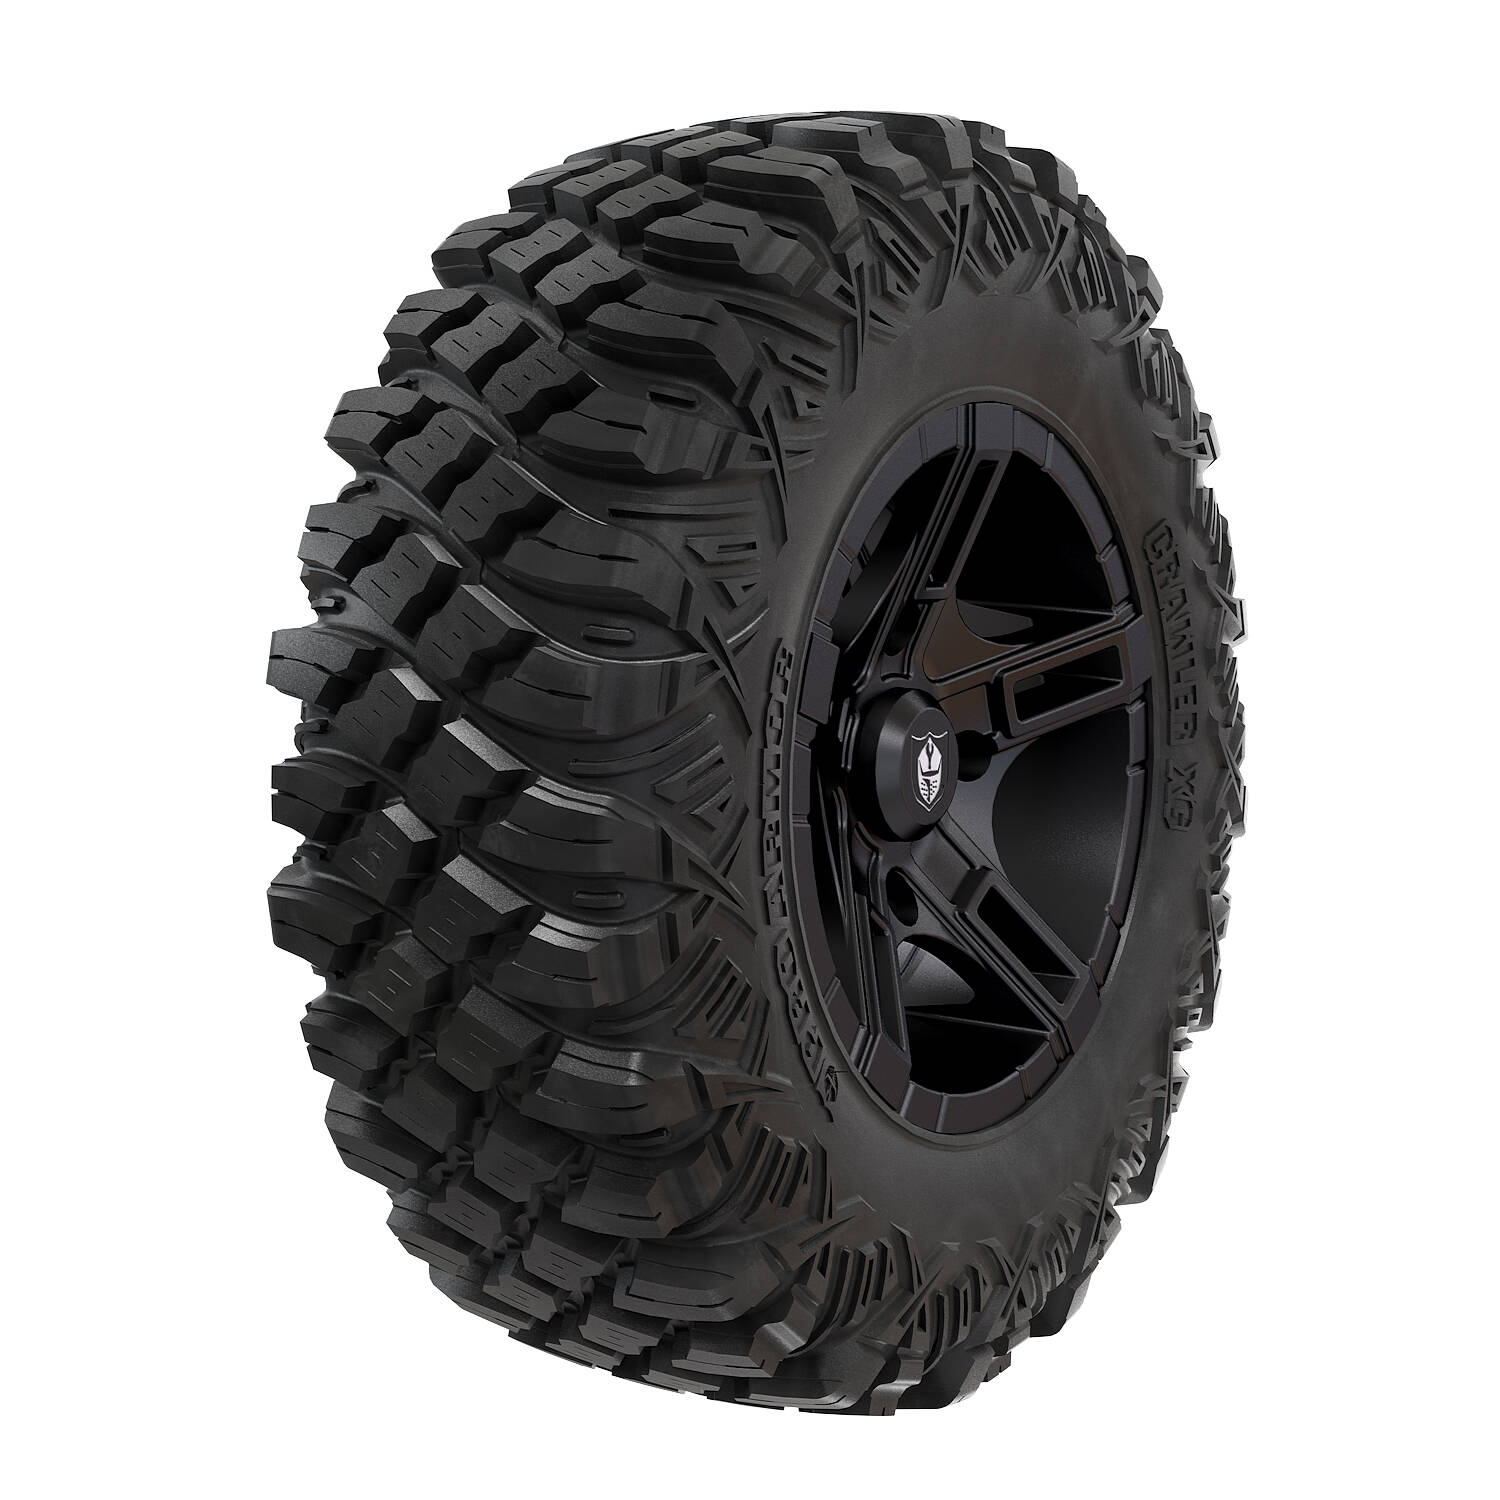 Pro Armor® Wheel & Tire Set: Flare - Matte Black & Crawler XG - 30""